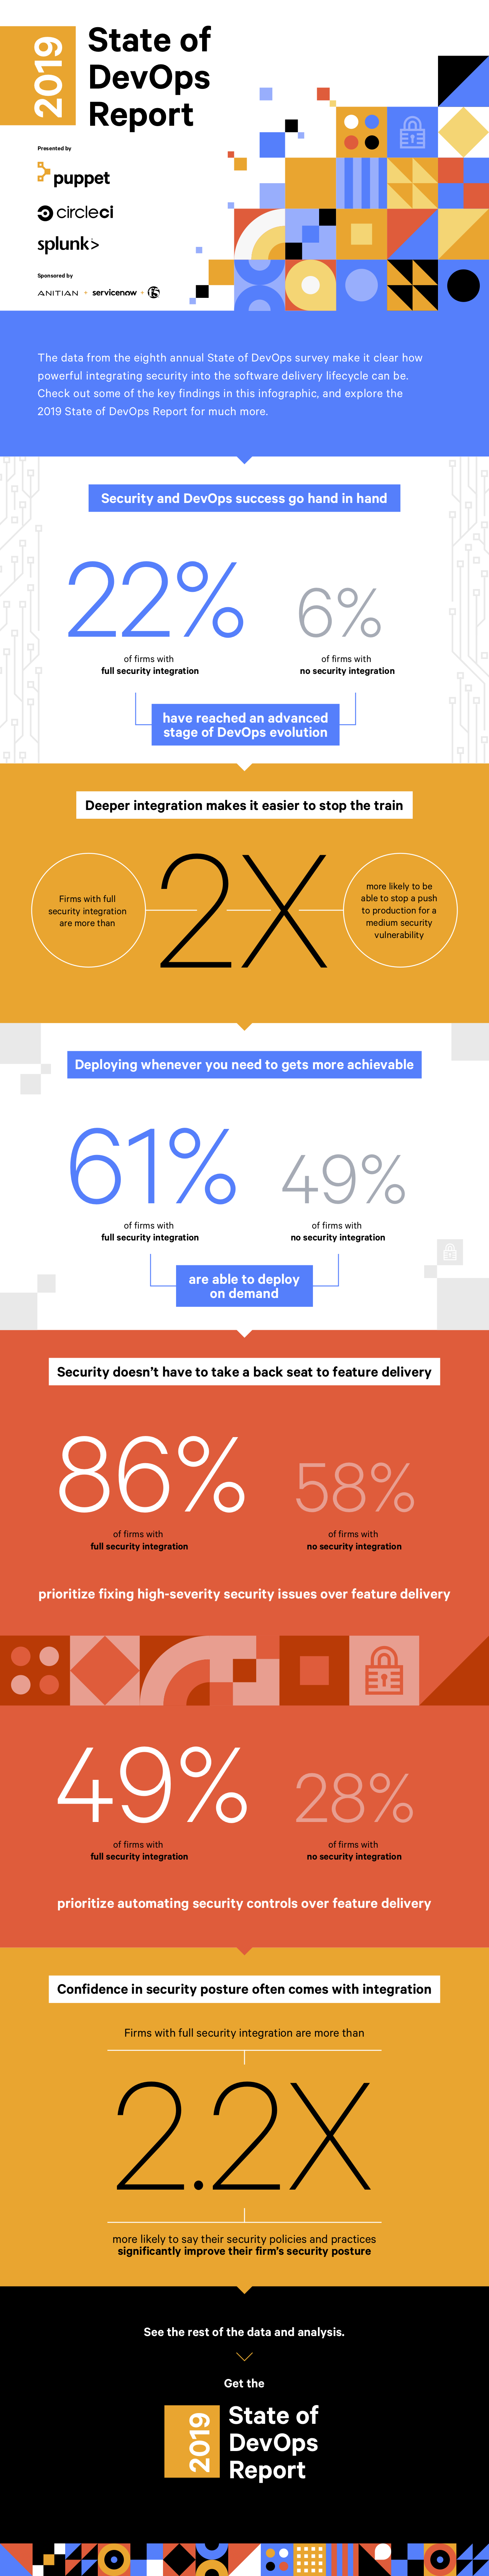 2019-state-of-devops-report-sponsor-infographic.png